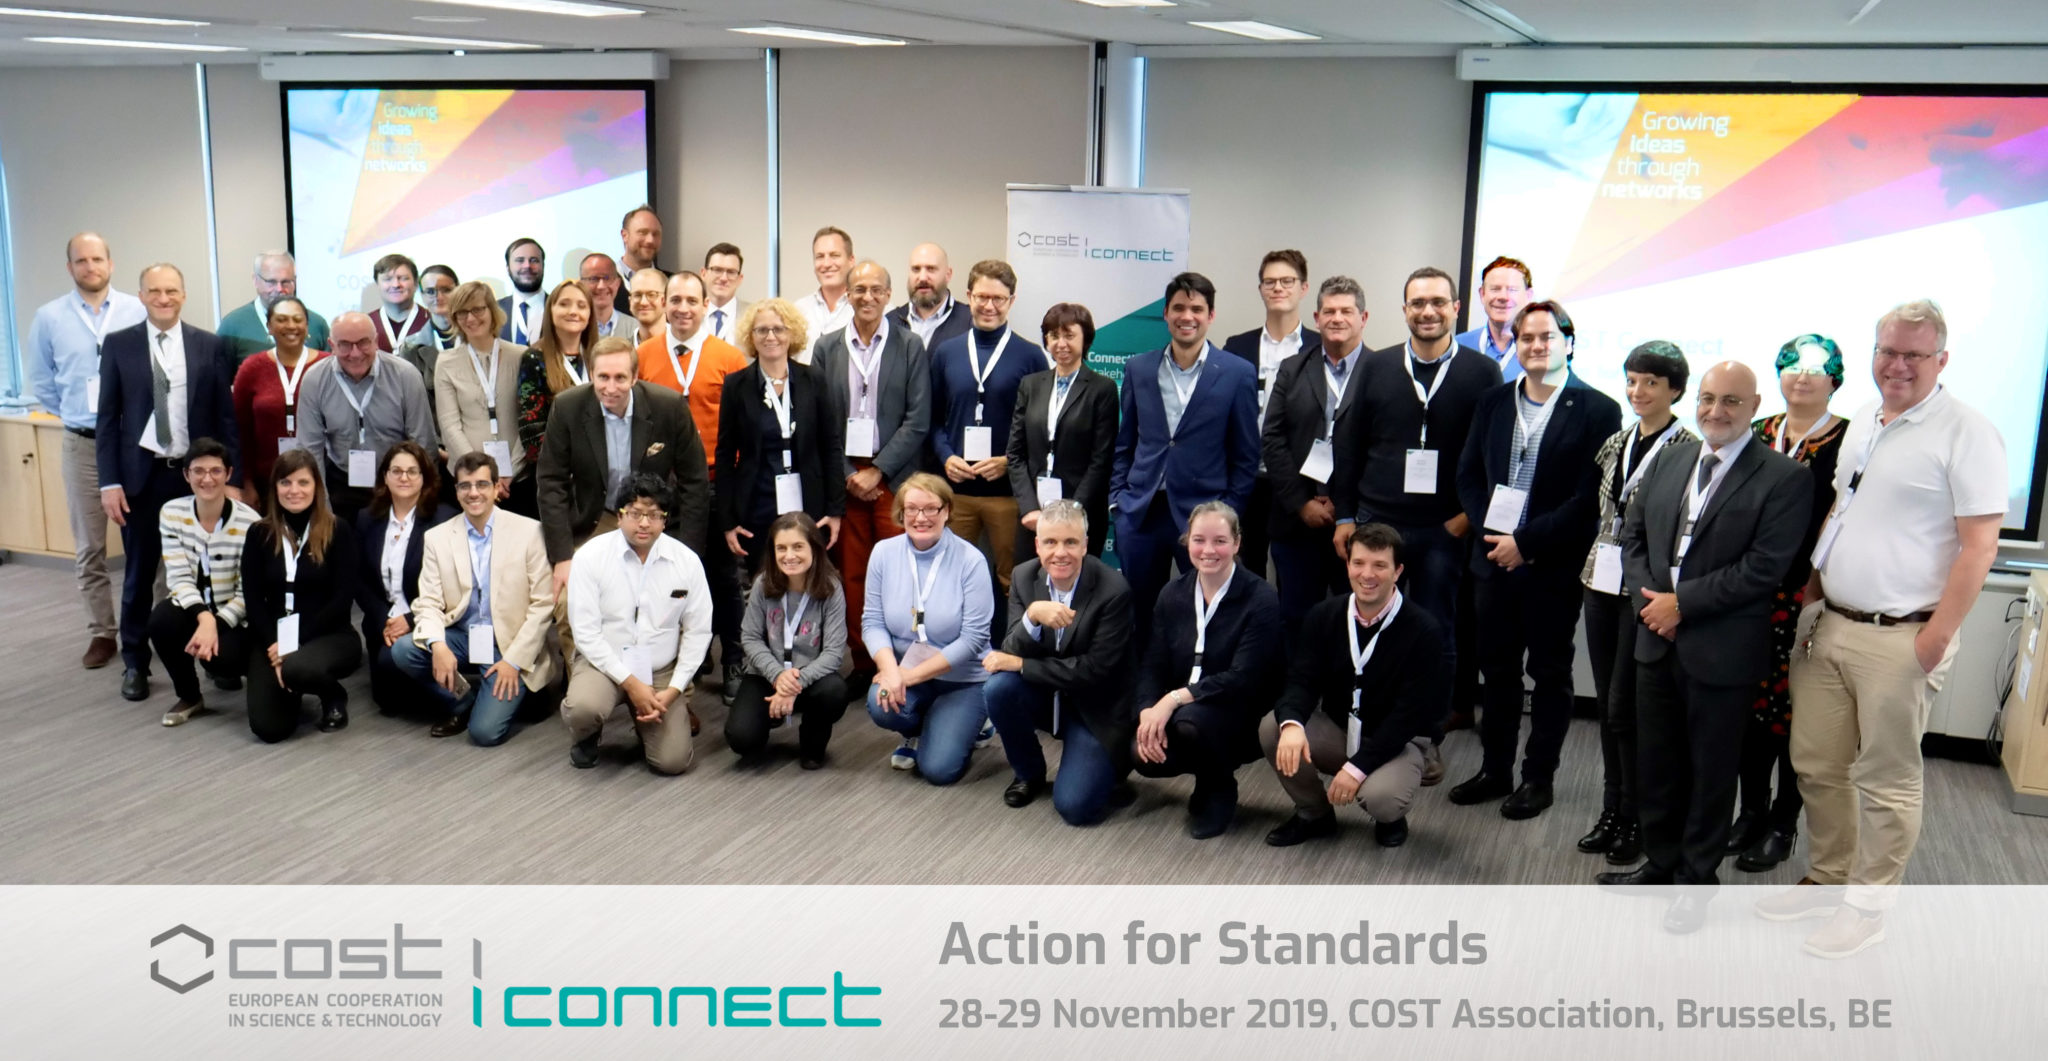 Standards make the world go round COST connect action for standards